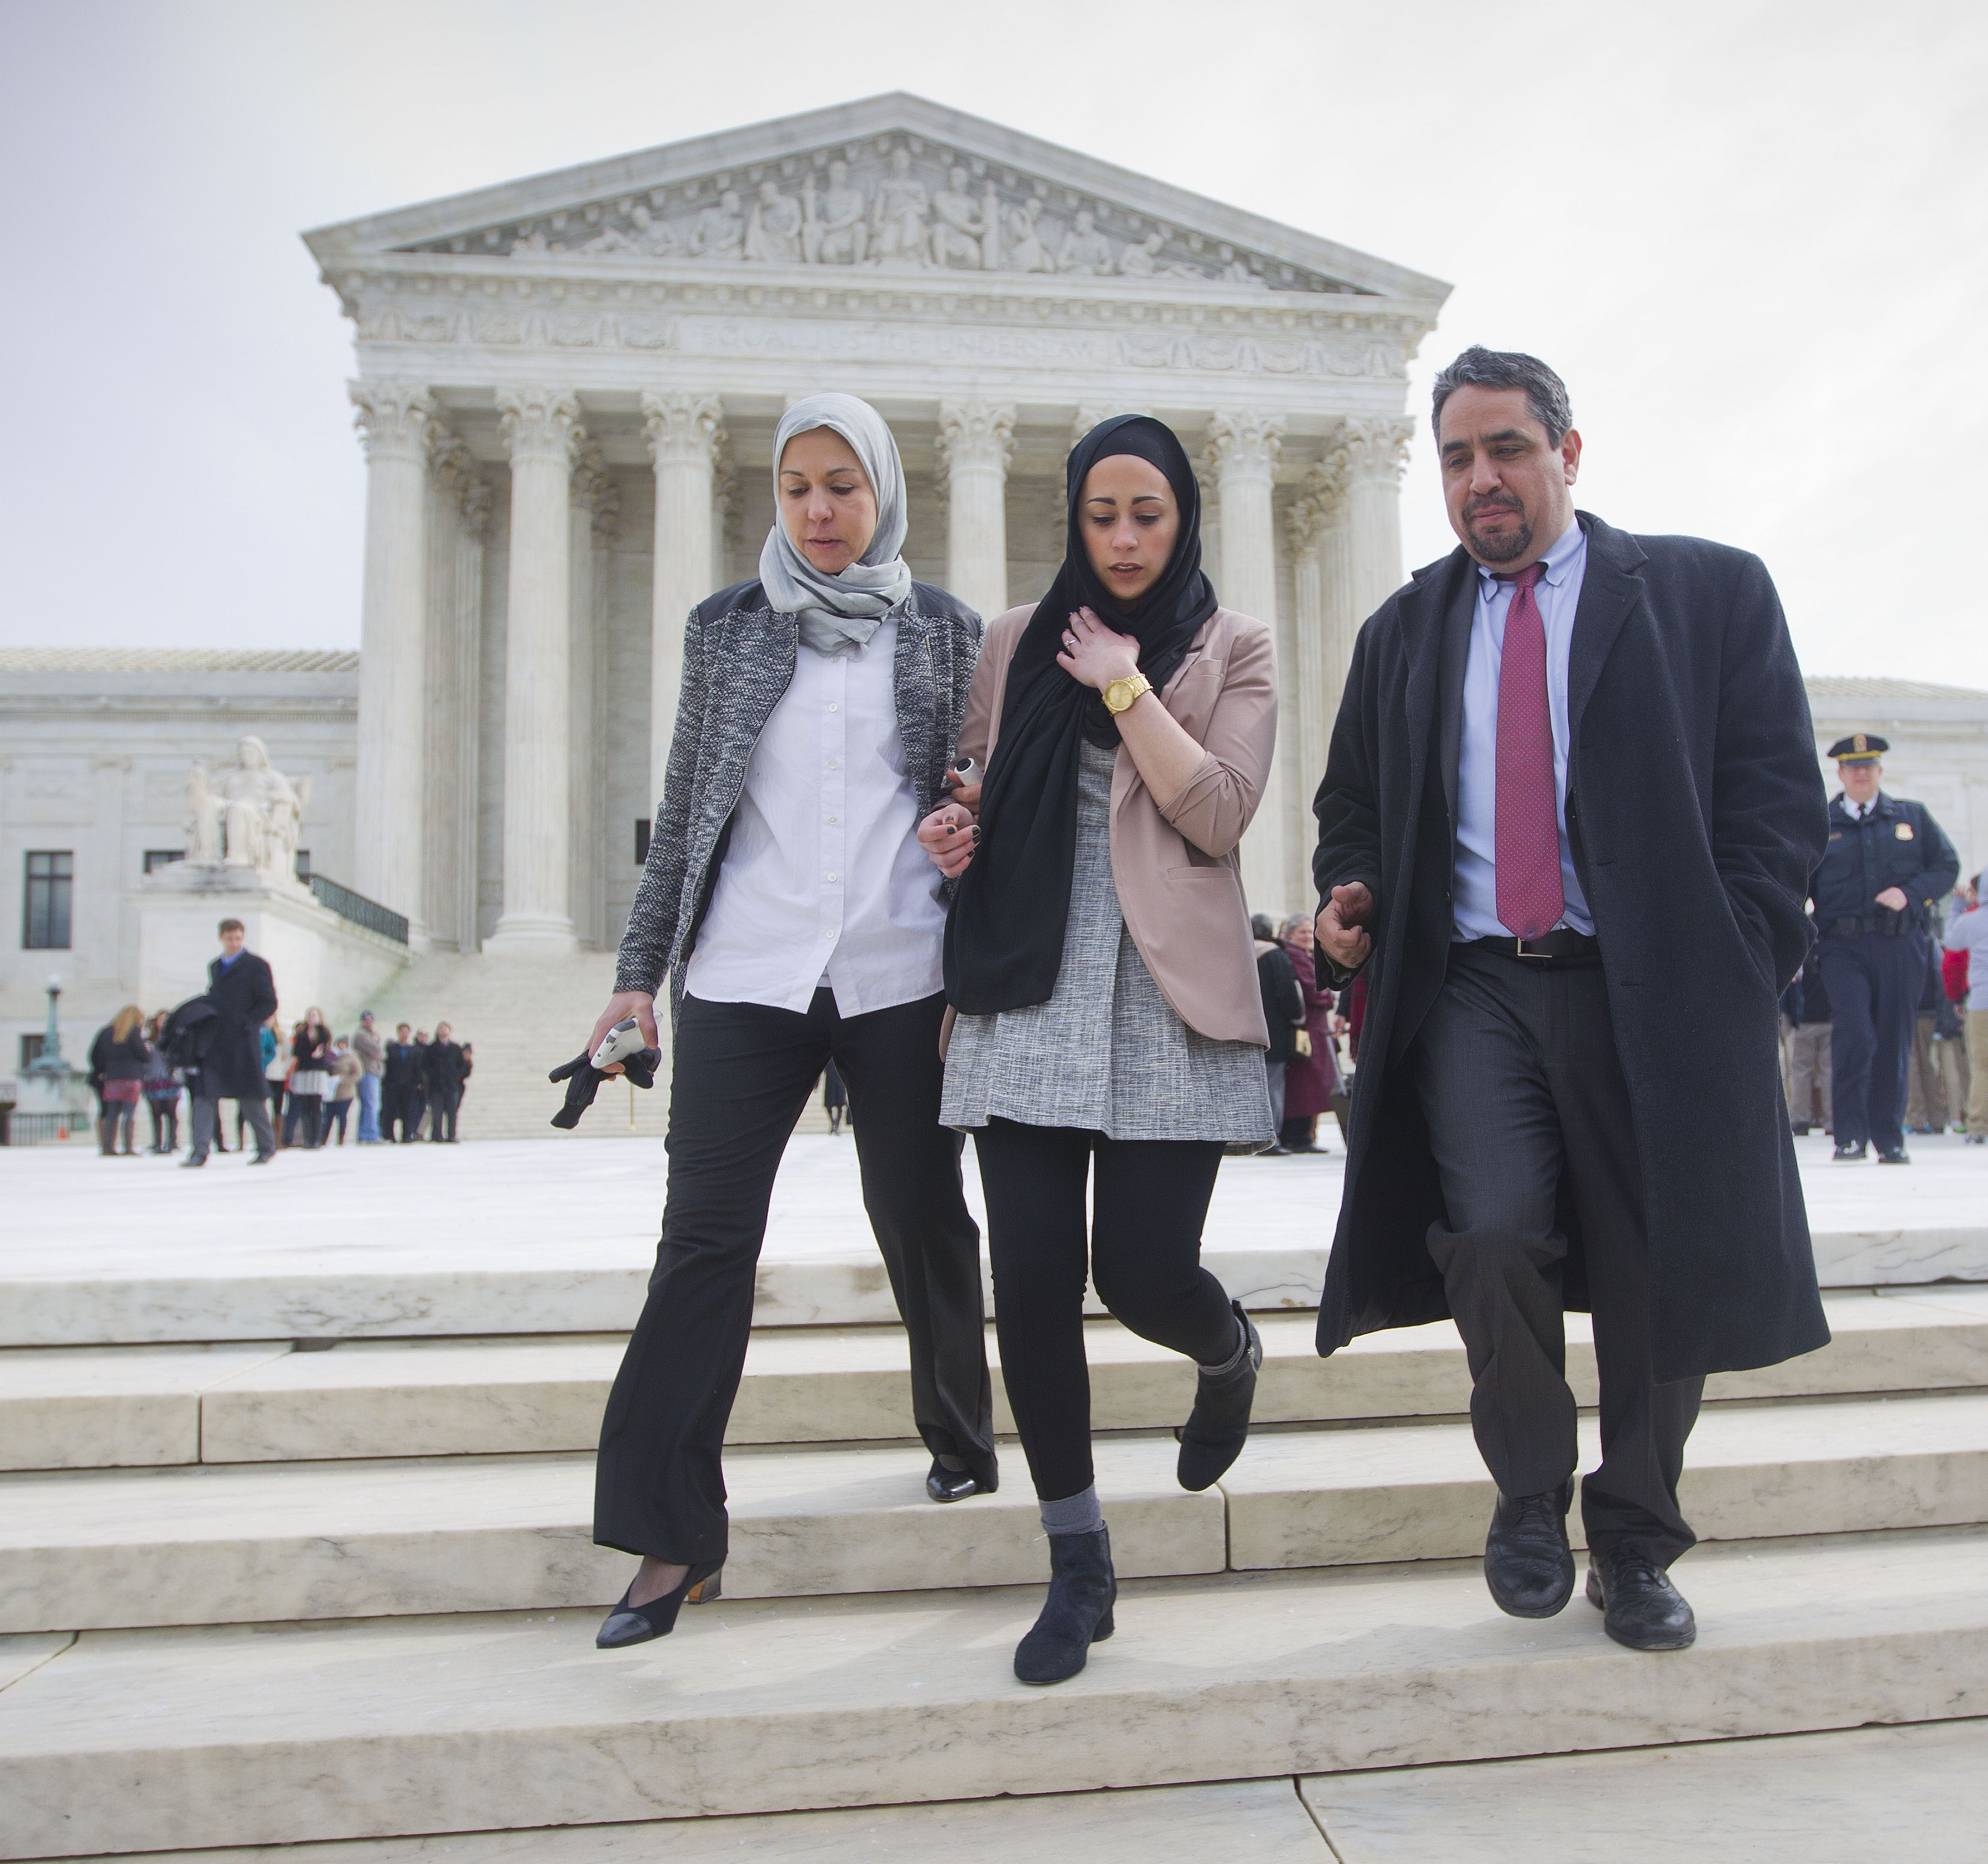 Court favors freedom of faith in ruling over Muslim job seeker's headscarf